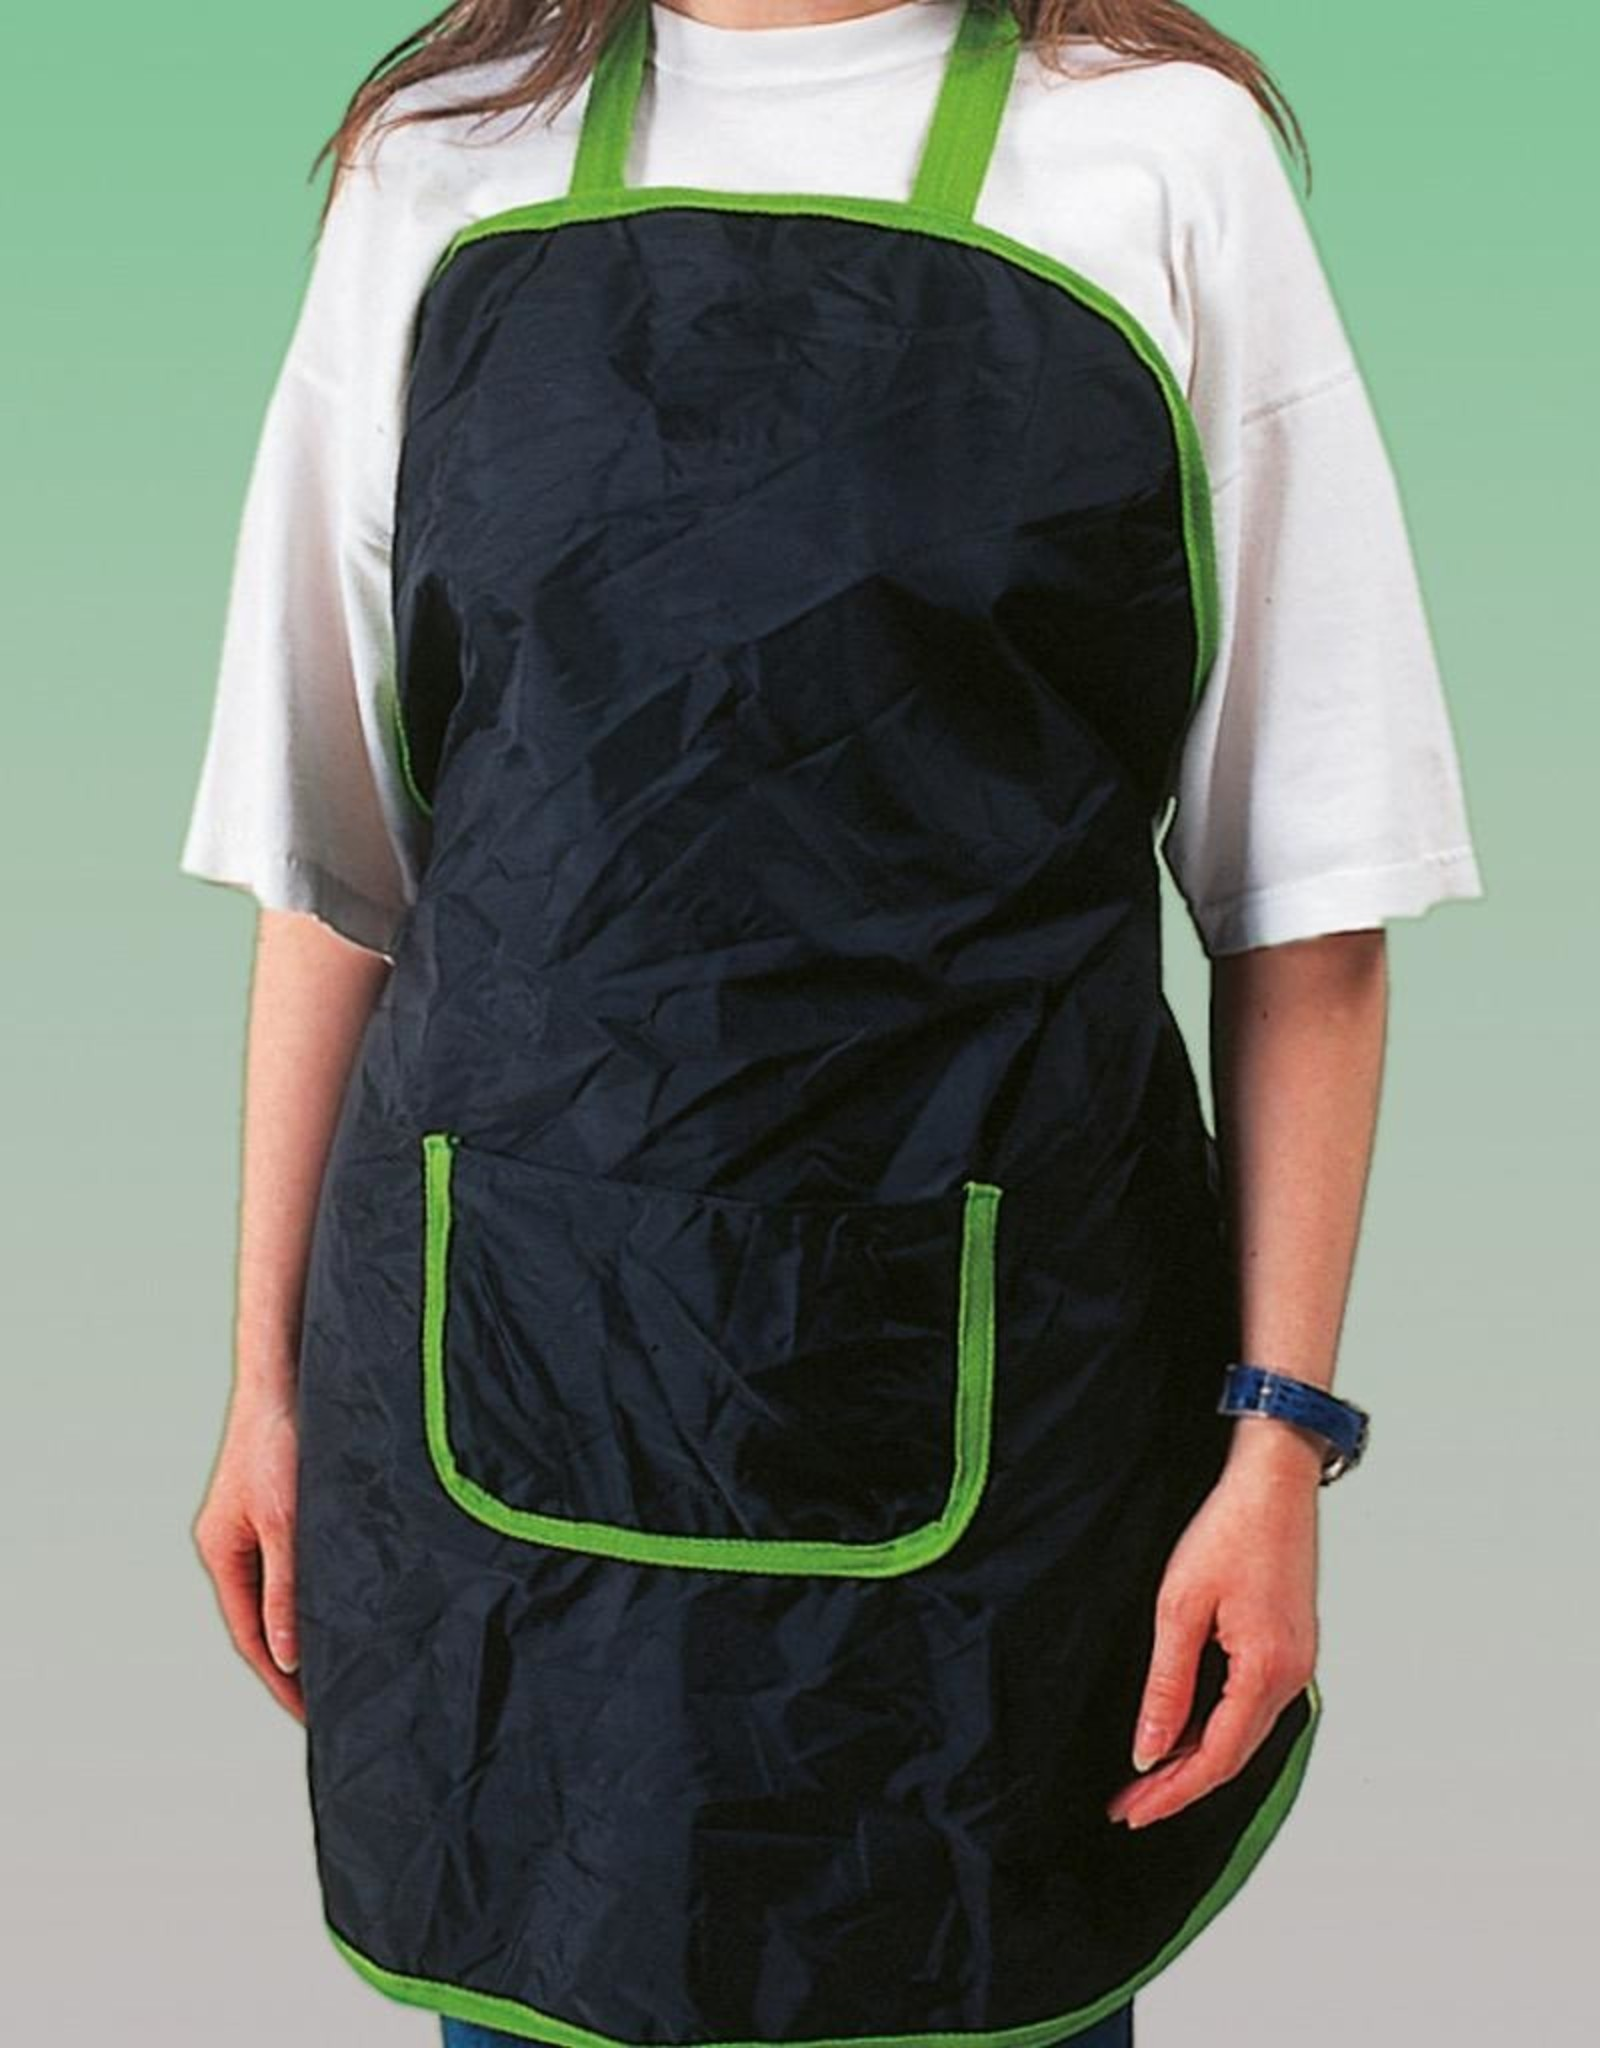 Kaiser Kaiser Lab Apron with pocket